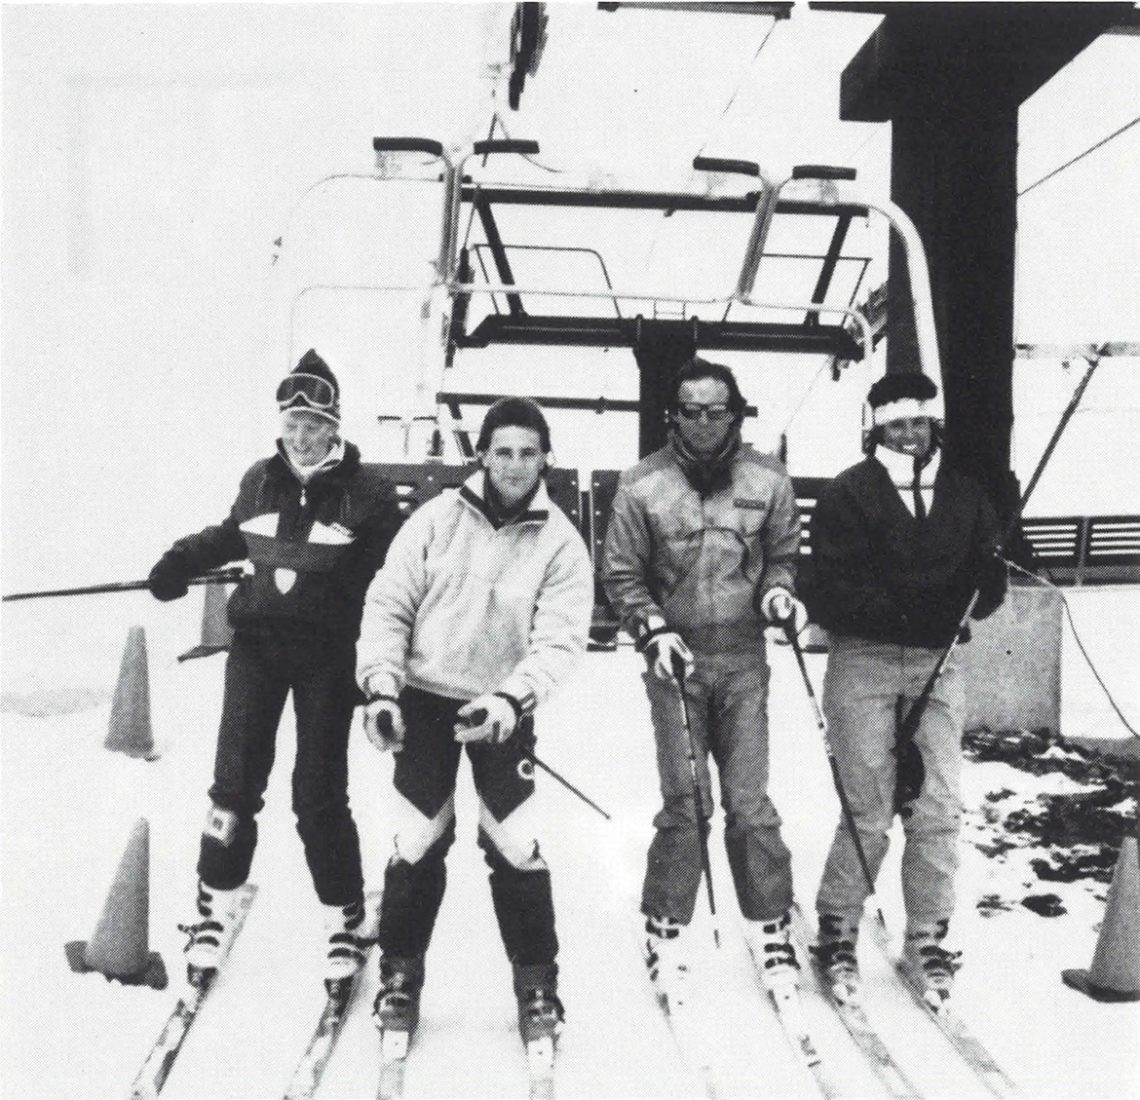 1988 Ski Industry Class at Sugarloaf